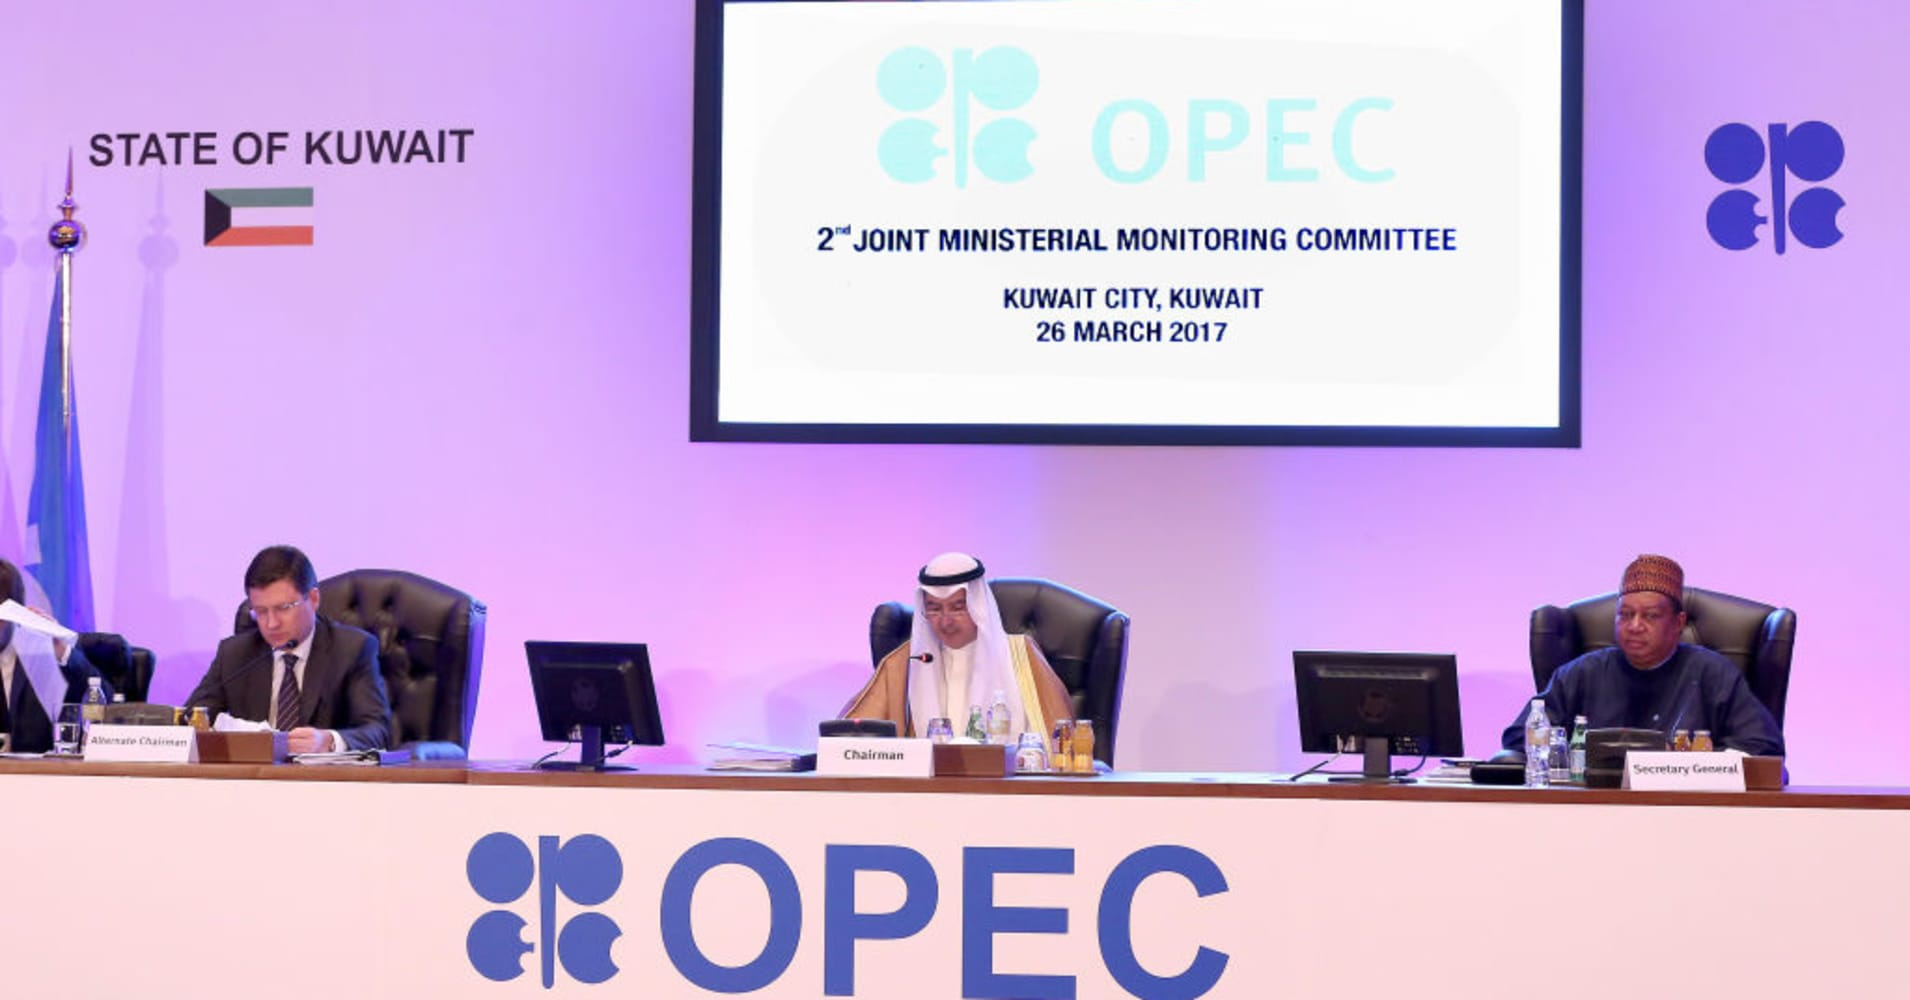 OPEC, non-OPEC oil producers meet in Kuwait over output-cut compliance